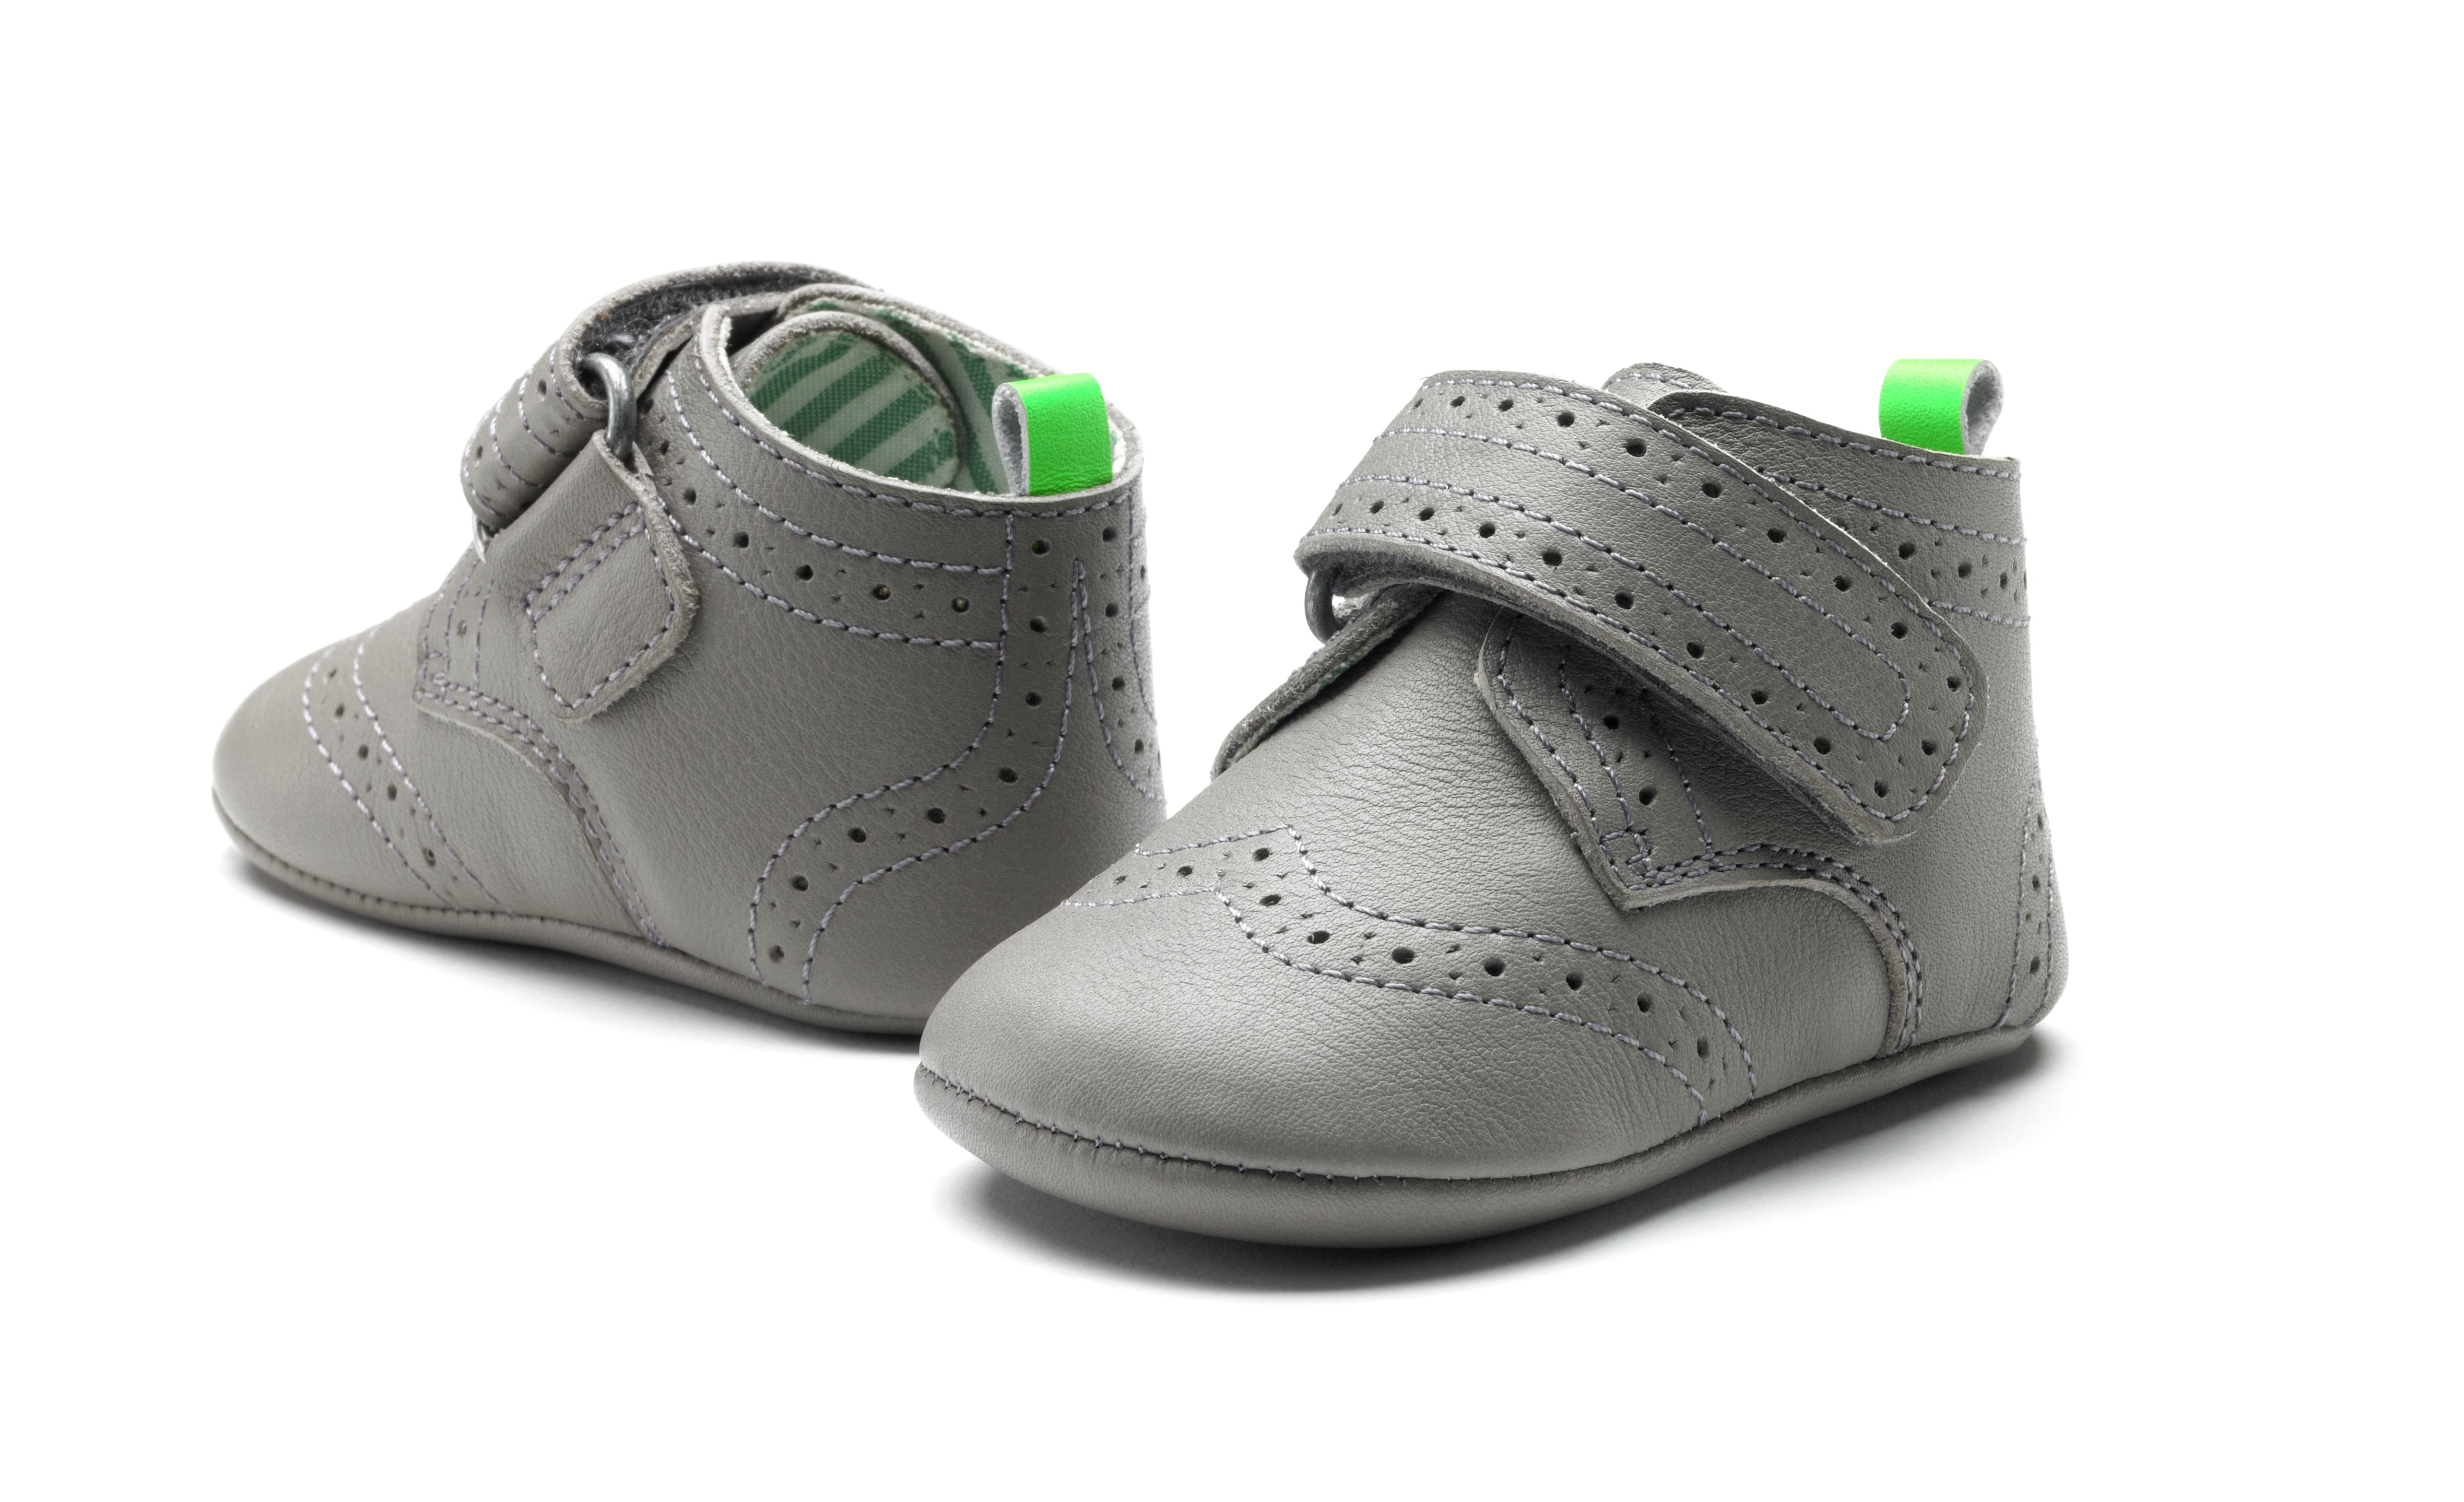 Limited edition classic yet modern soft sole baby boys leather shoes